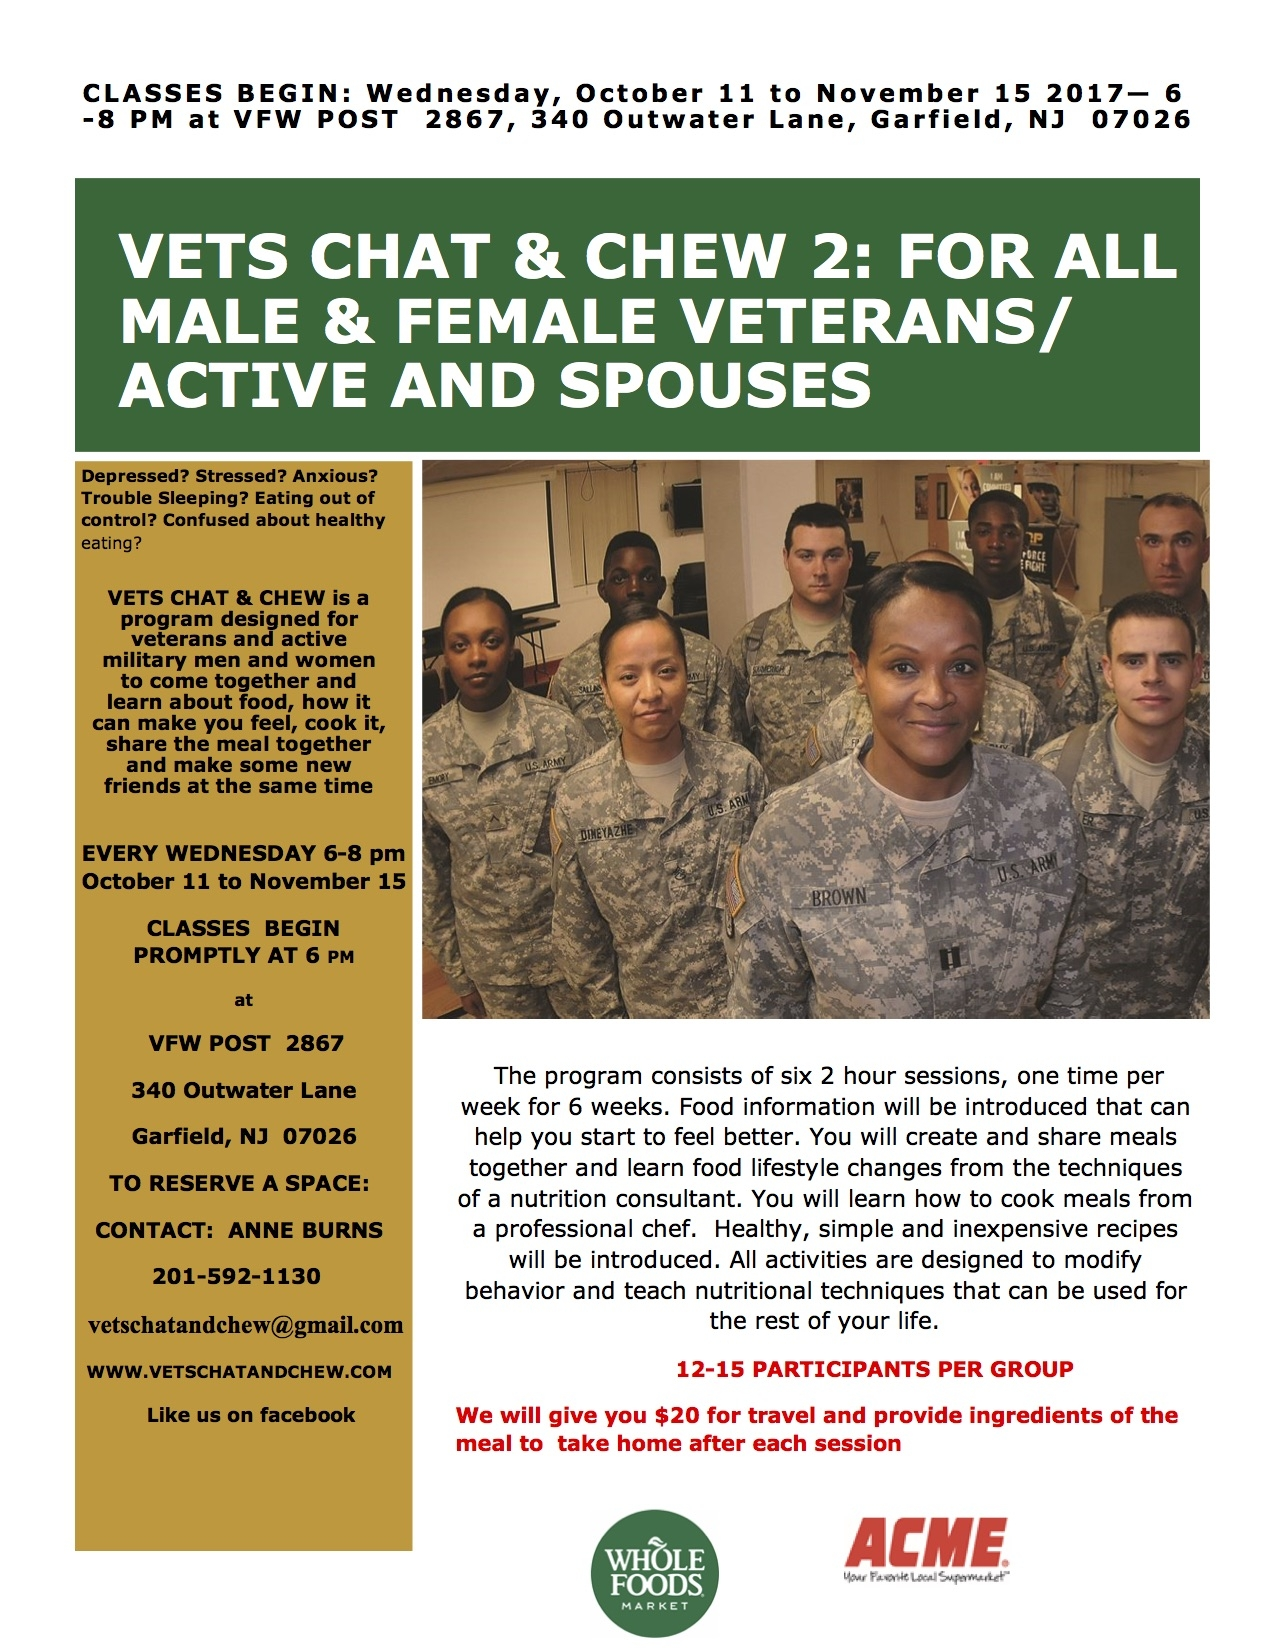 Vets+Chat+&+Chew+for+M&F+veterans+&+Spouses+Oct.11-Nov.15.jpg